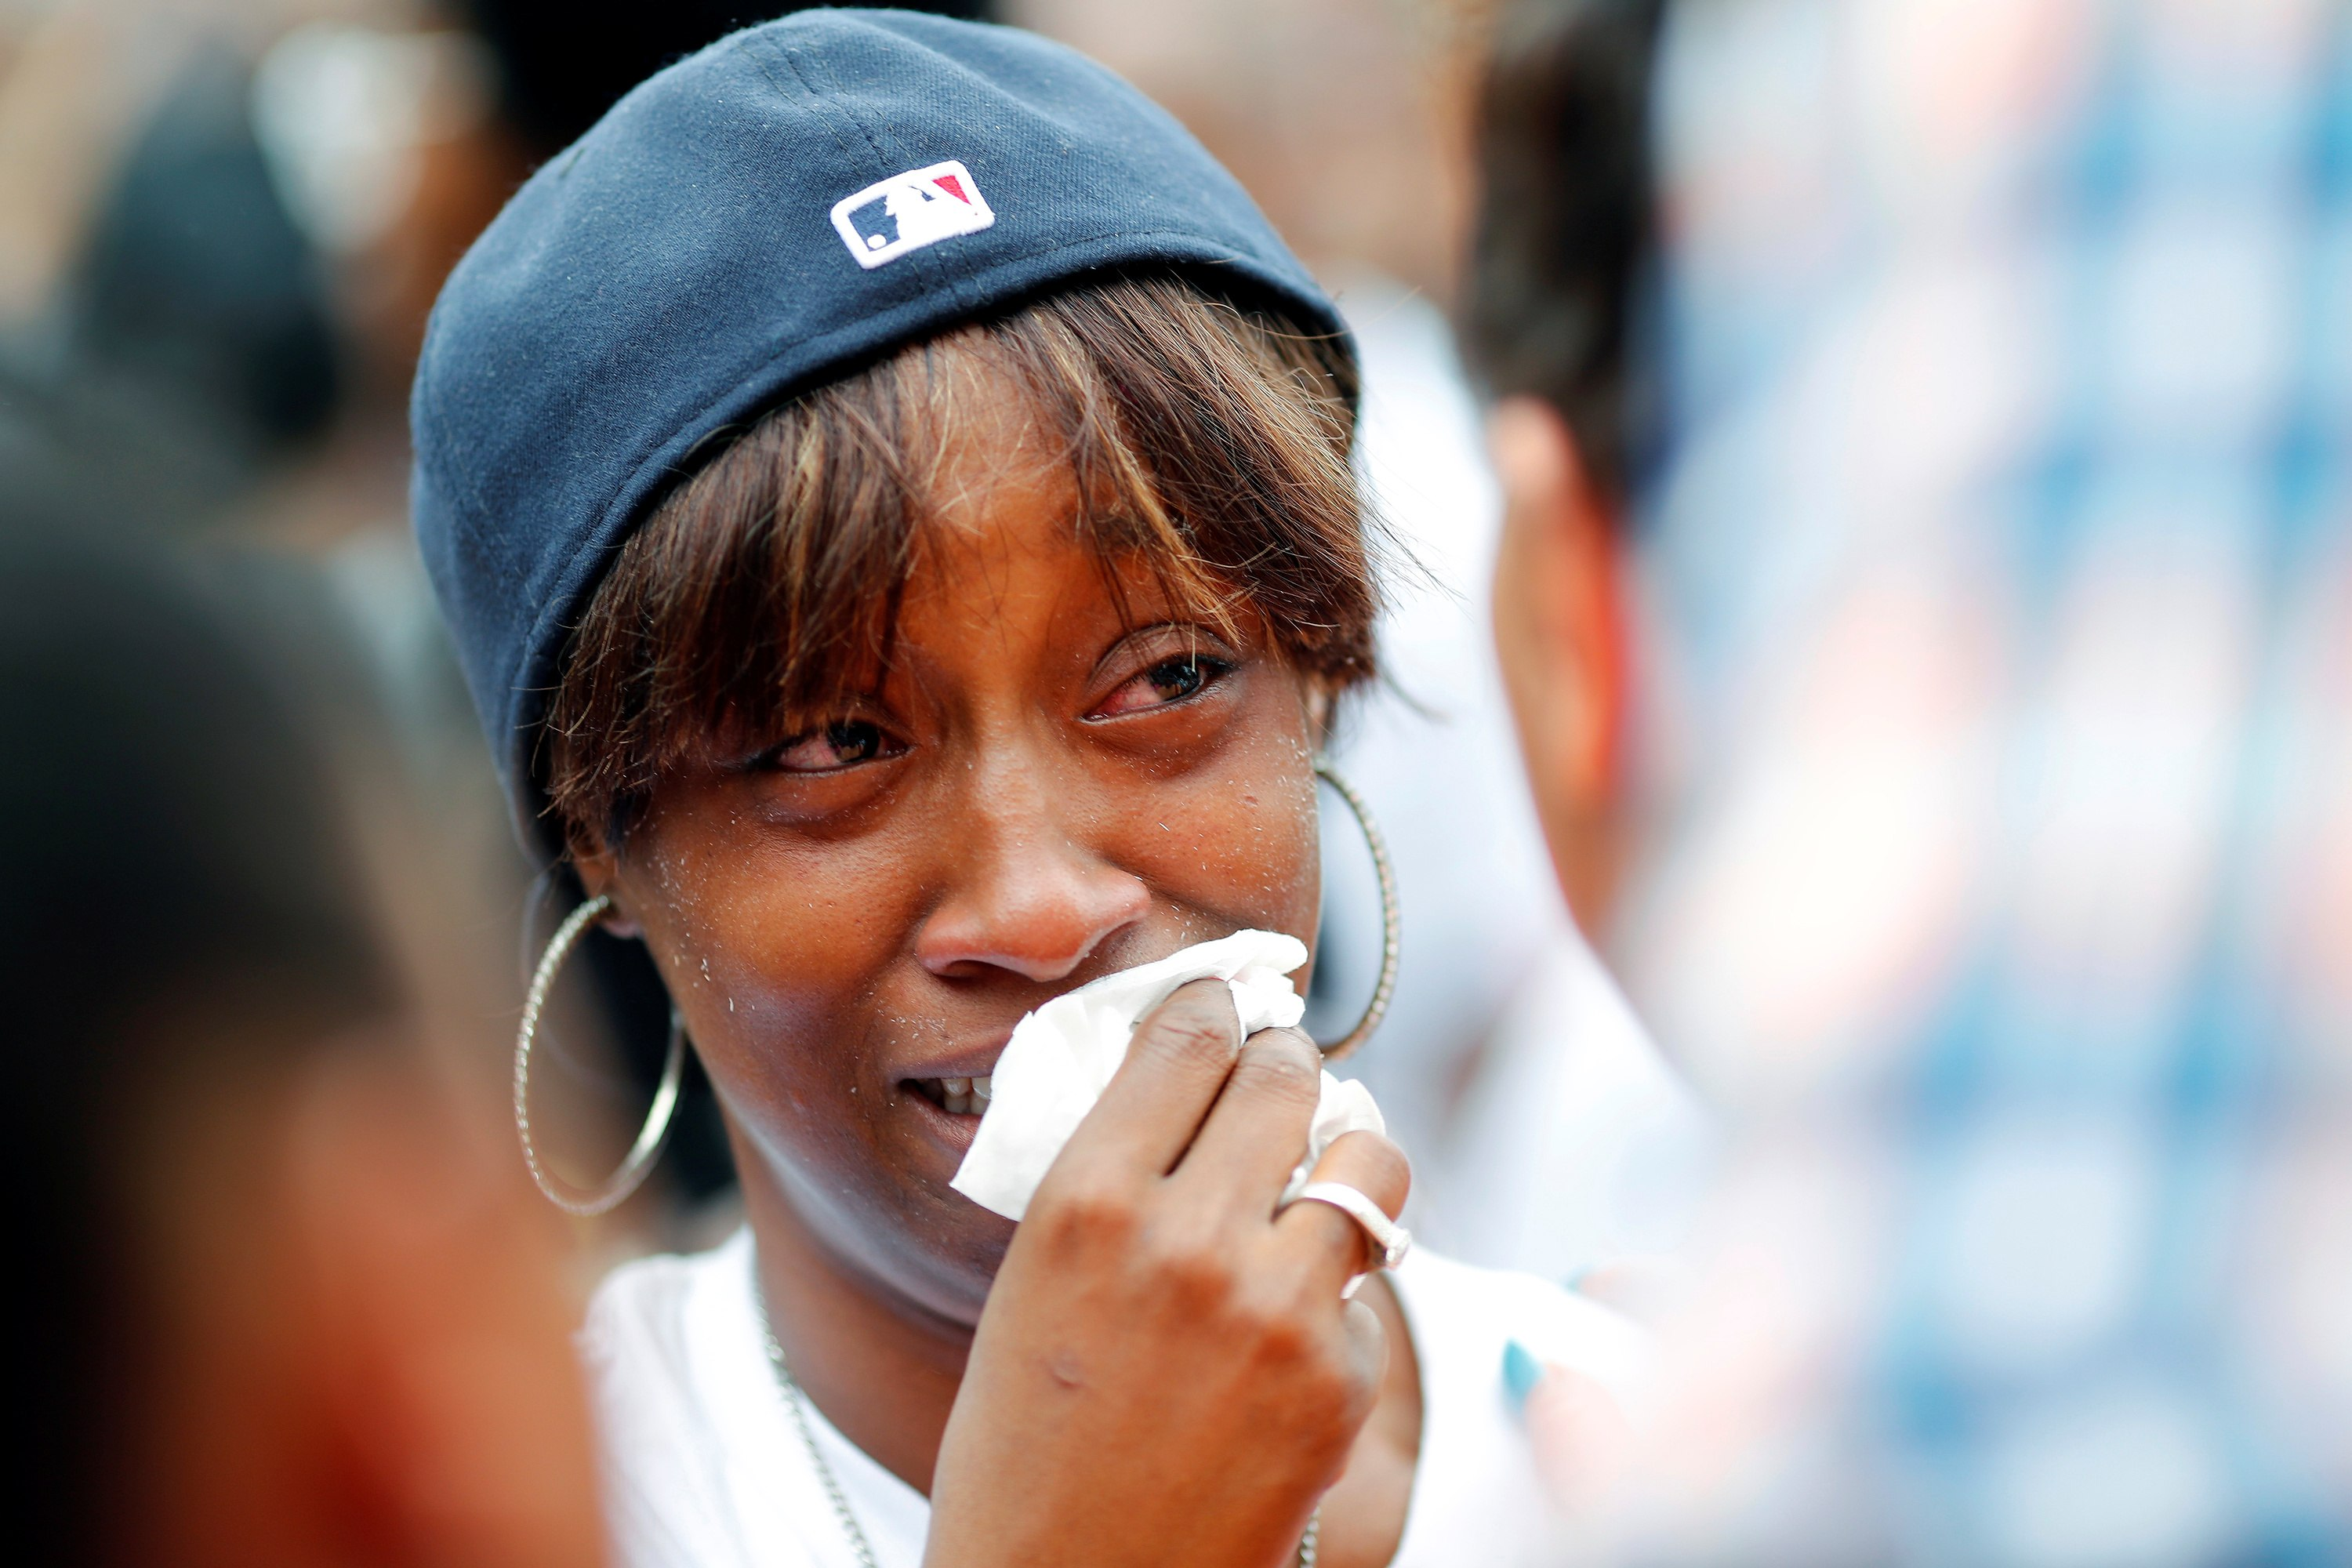 Diamond Reynolds, girlfriend of Philando Castile, weeps as people gather to protest the fatal shooting of Castile by Minneapolis area police during a traffic stop on Wednesday, in St. Paul, Minnesota, U.S.,